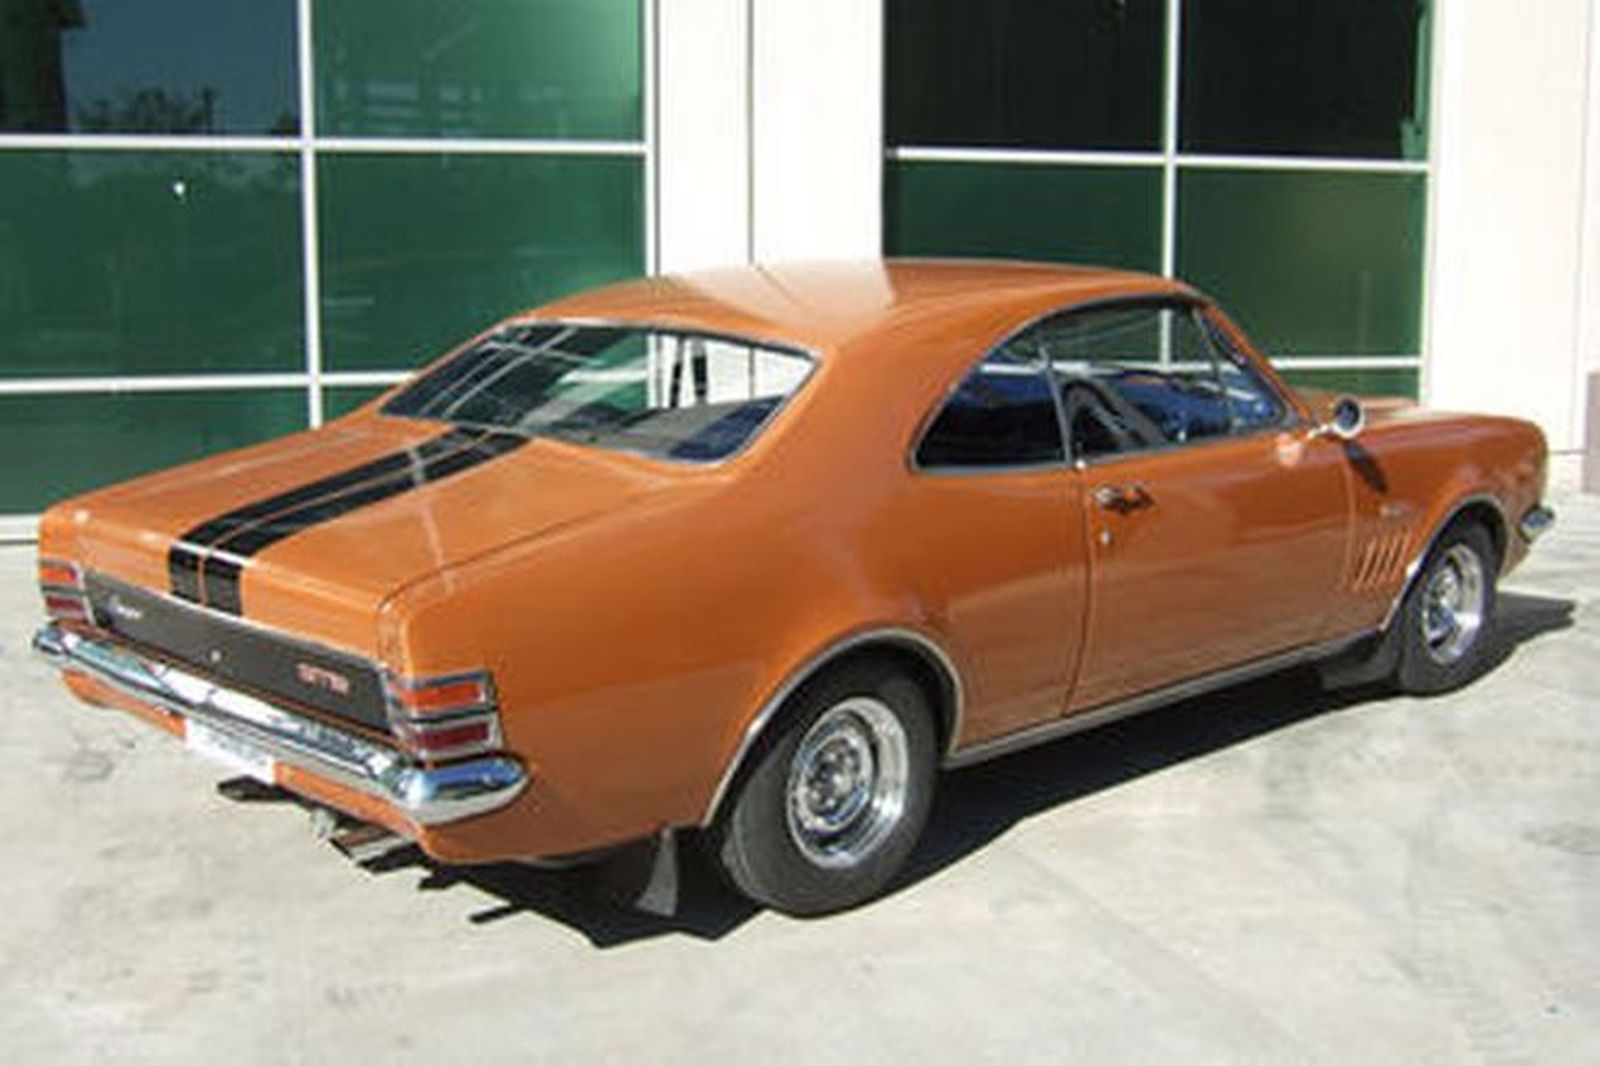 Holden Ht Gts 186s Monaro Coupe Auctions Lot 10 Shannons